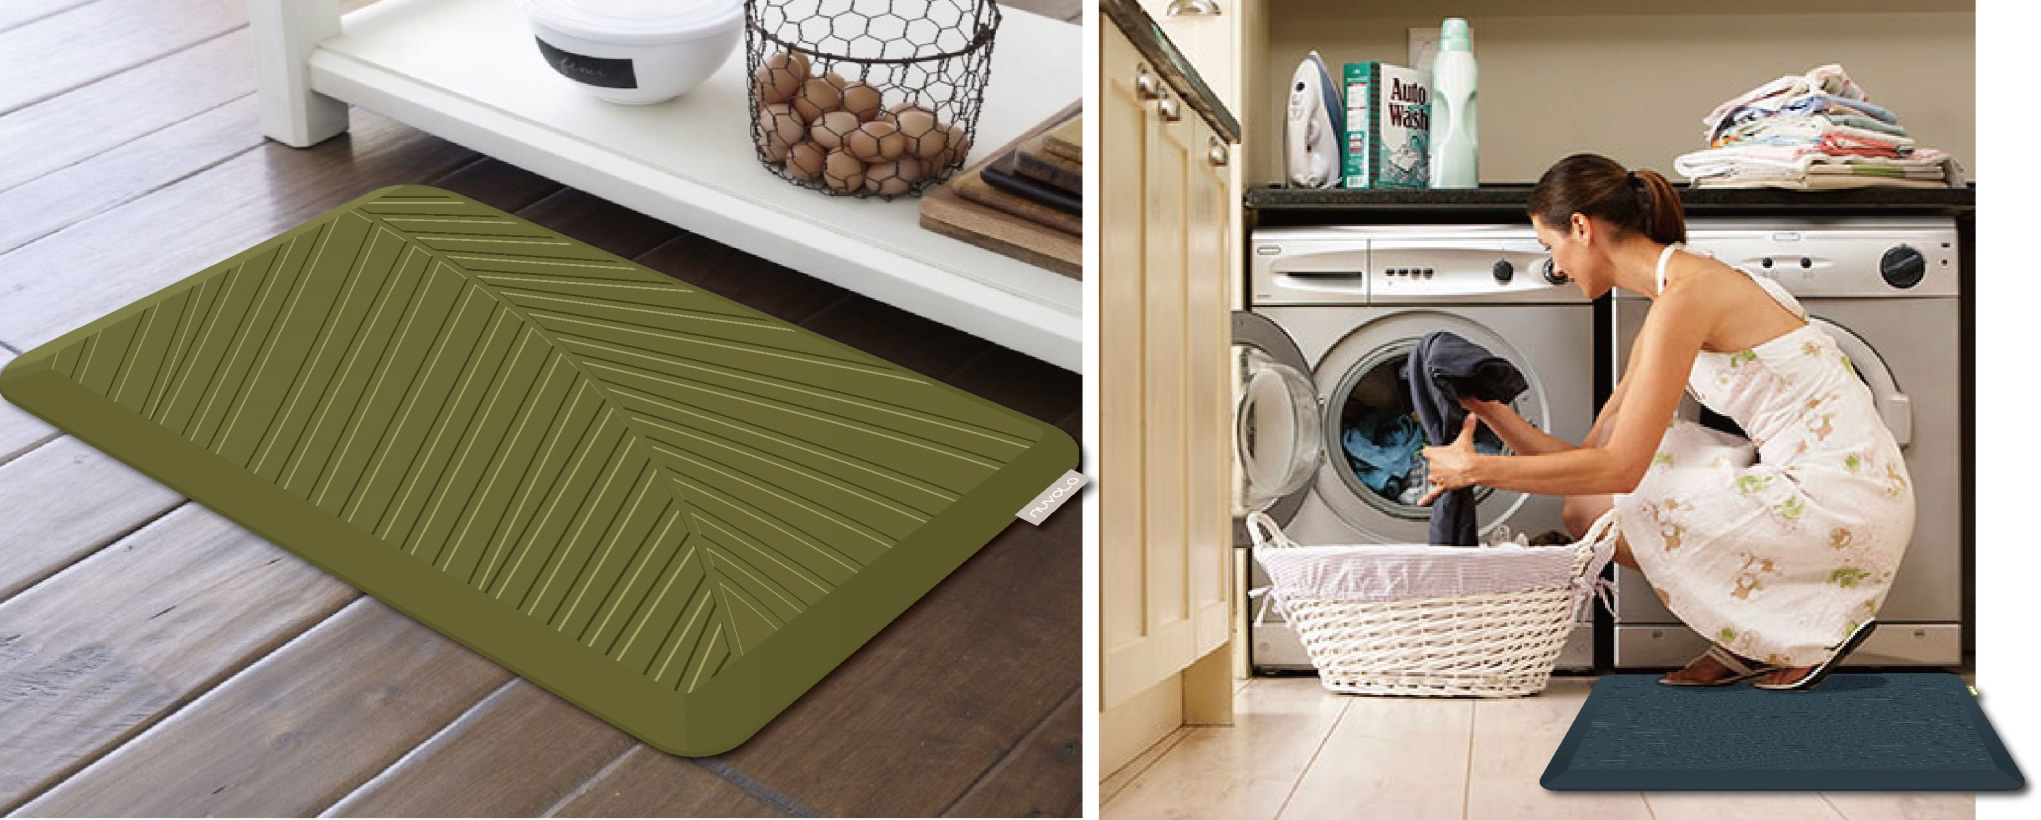 Kitchen Mat Standing Mat Kitchen Mat Anti Fatigue